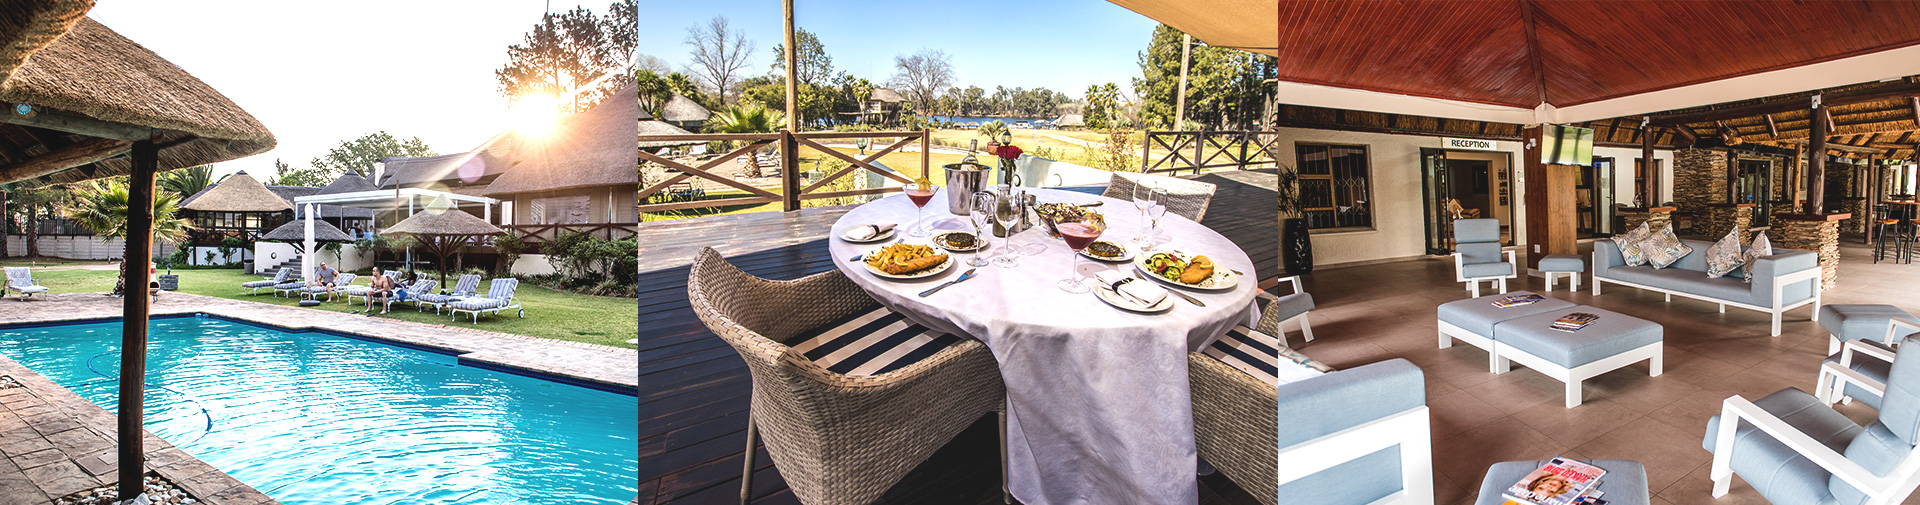 Vaal River Lodge and Spa Venue